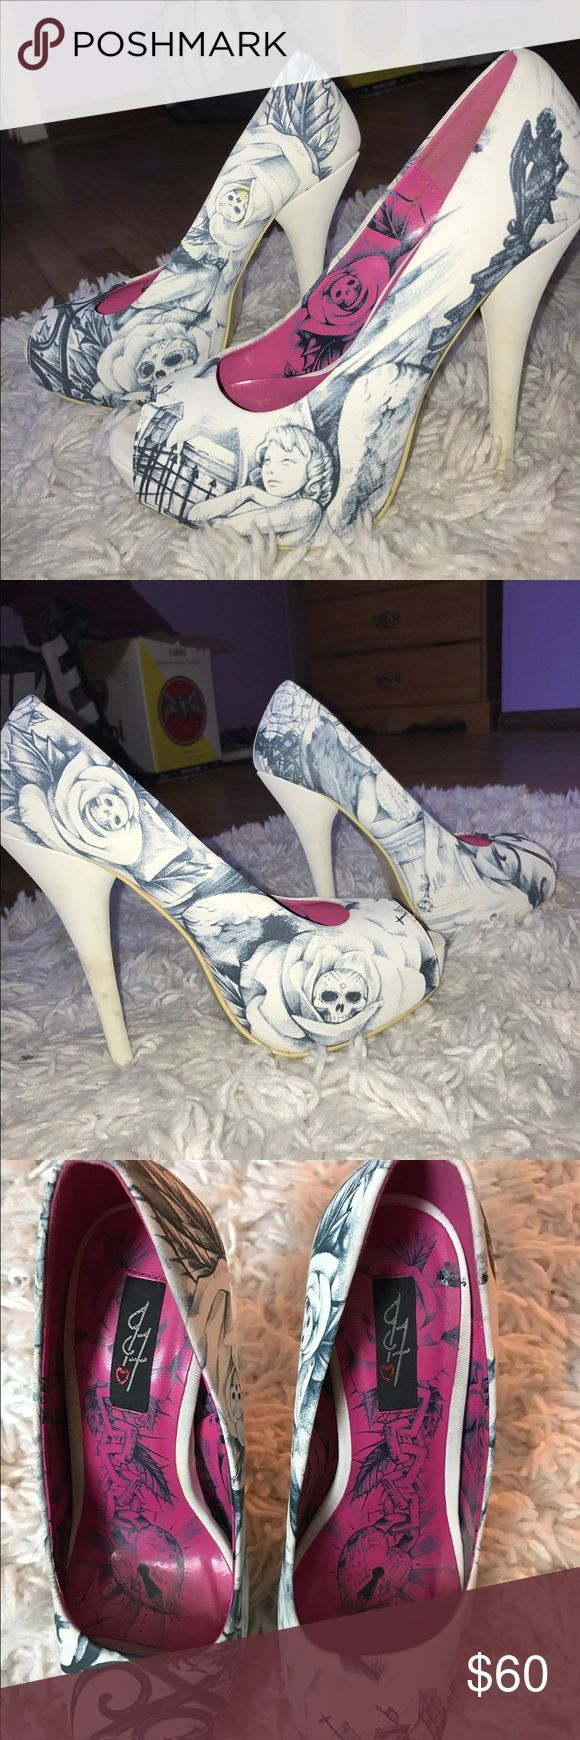 Iron fist heels White iron fist shoes Iron Fist Shoes Heels